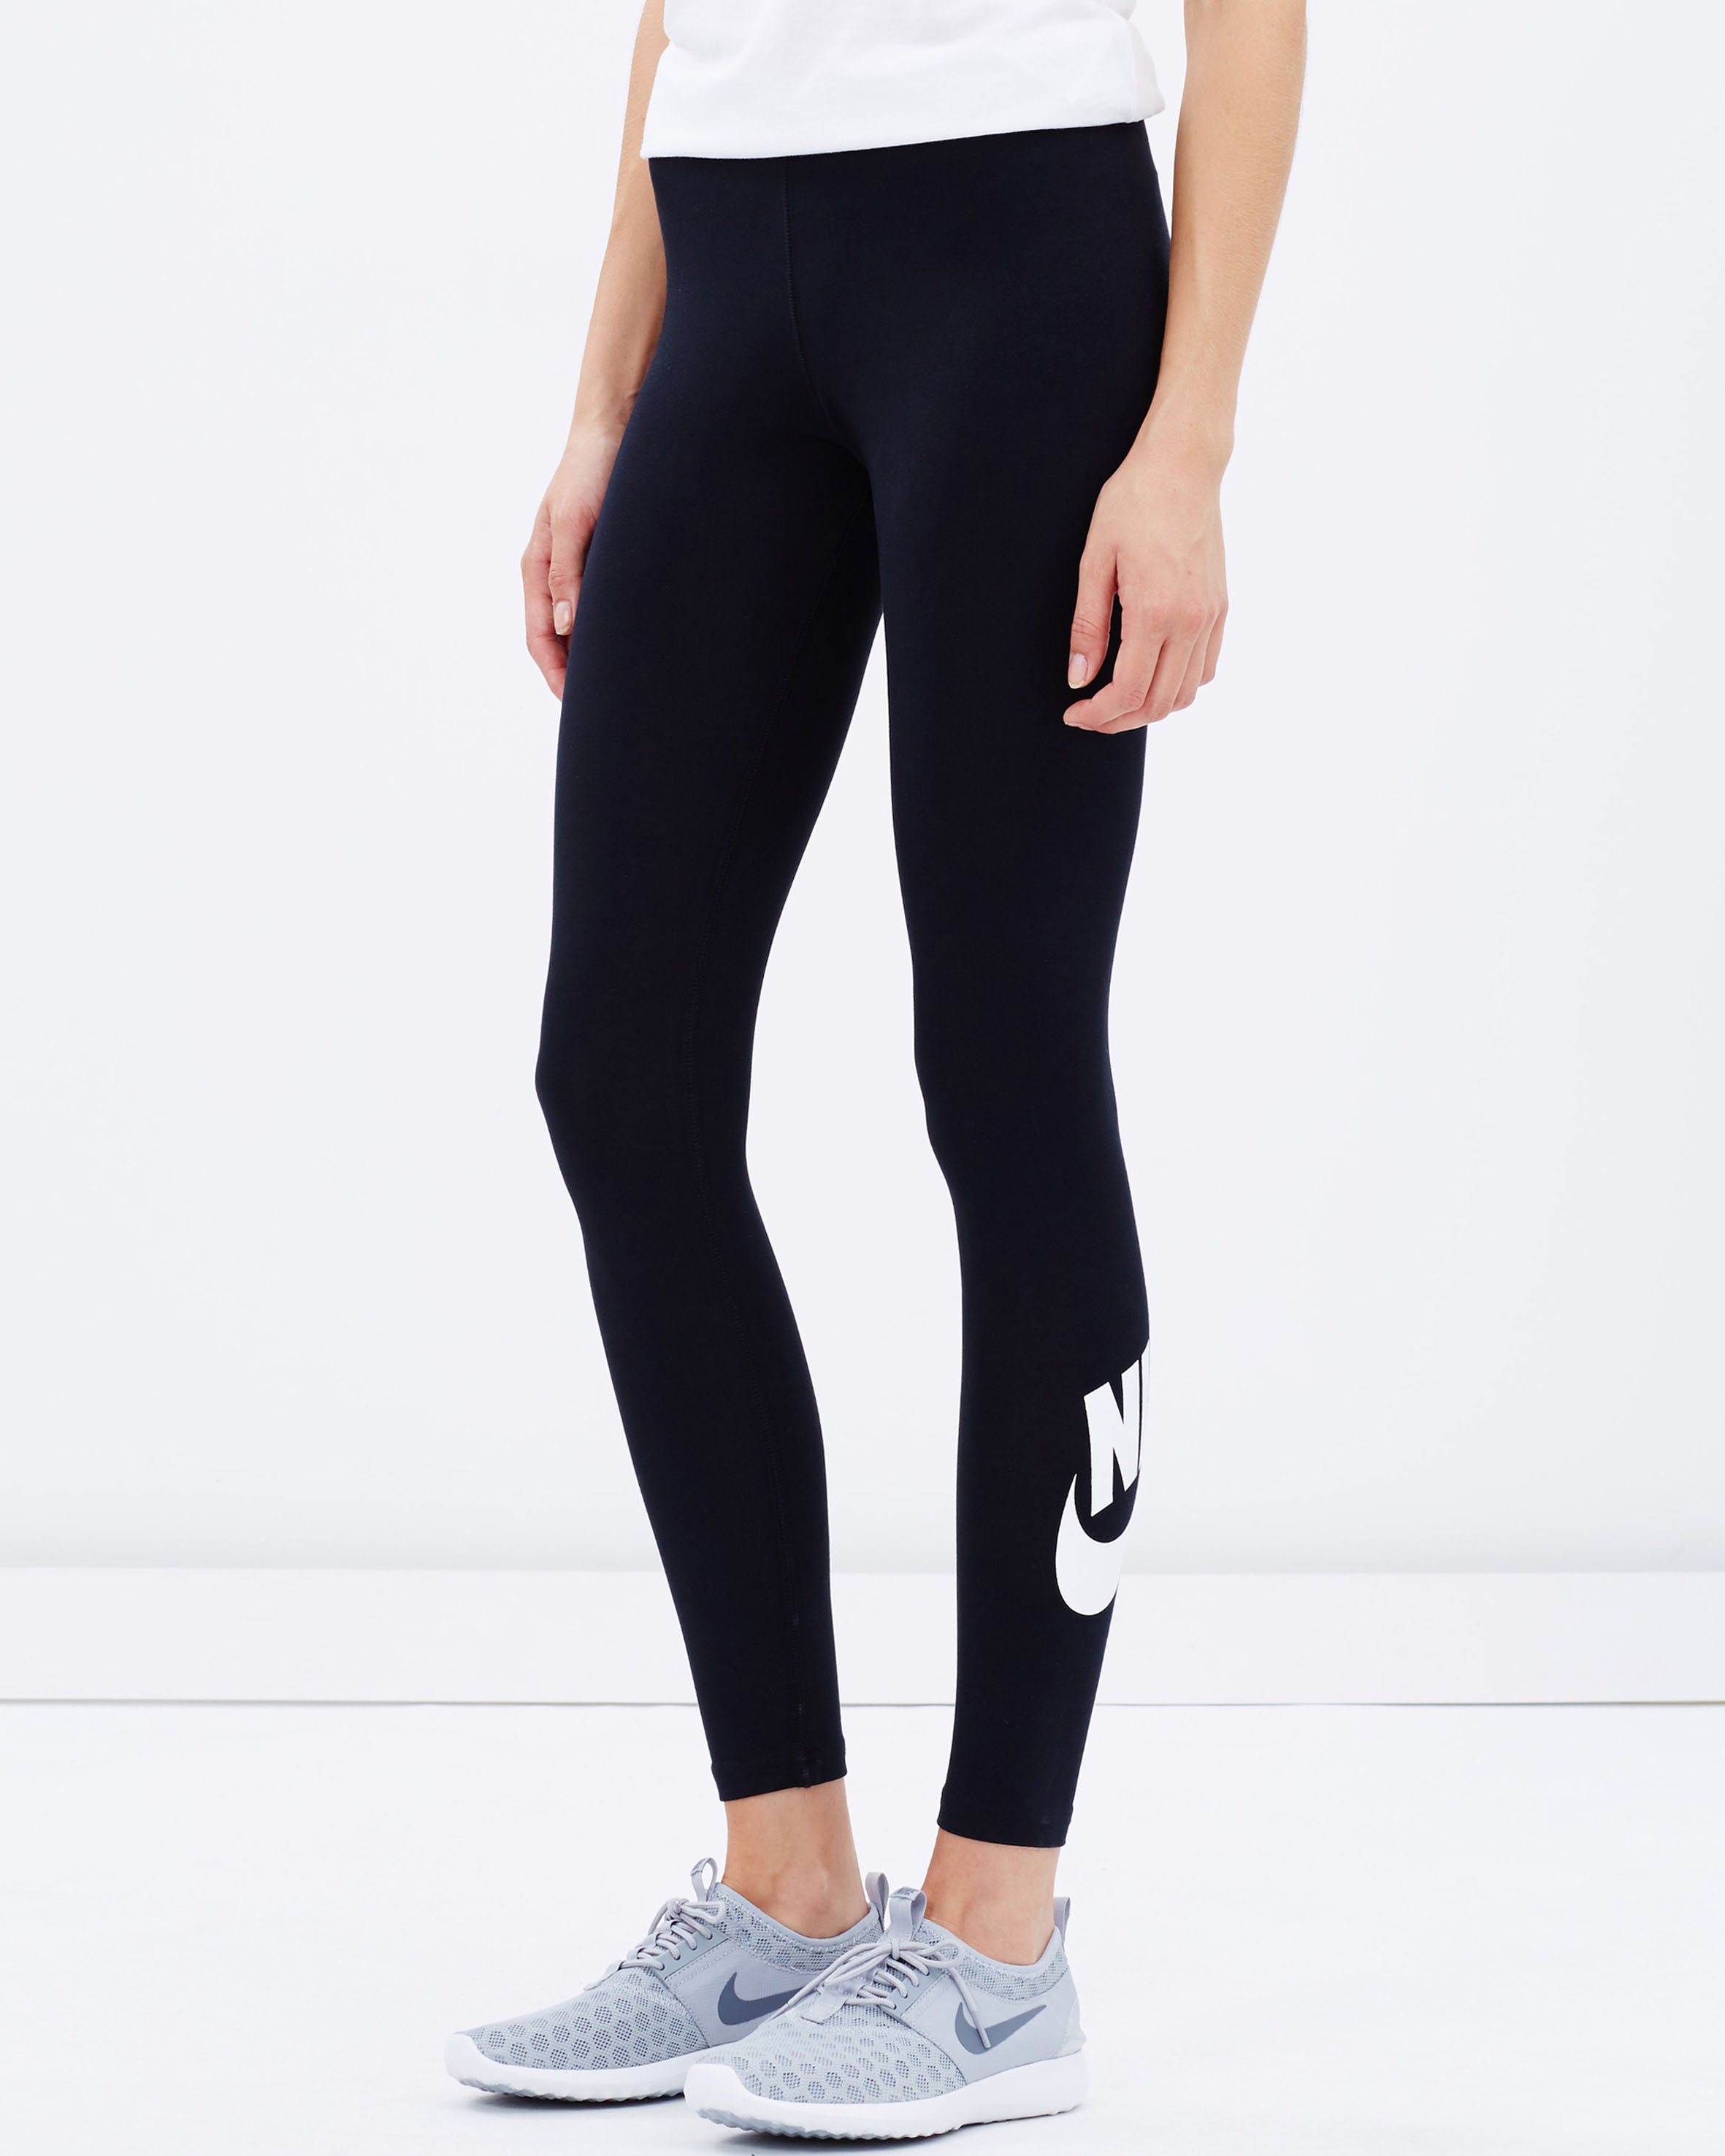 Lastest The Nike Dry Womens Soccer Pants Are The Perfect Warmup Addition To Your Training Needs Inspired By The NWSL Players, These Pants Have Zippered Pockets And Are Perfect To Wear To And From The Field Stay Cool And Comfortable